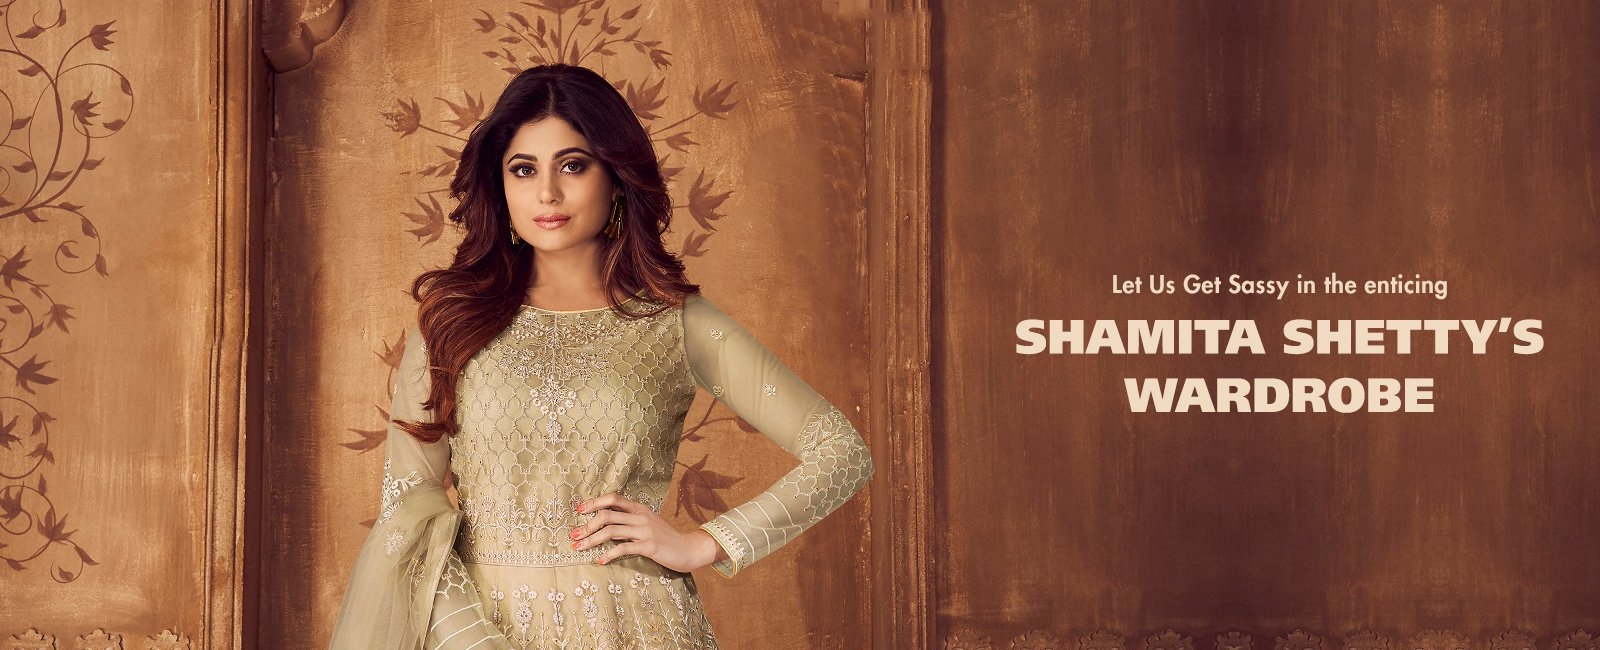 Let Us Get Sassy in the enticing Shamita Shetty's Wardrobe